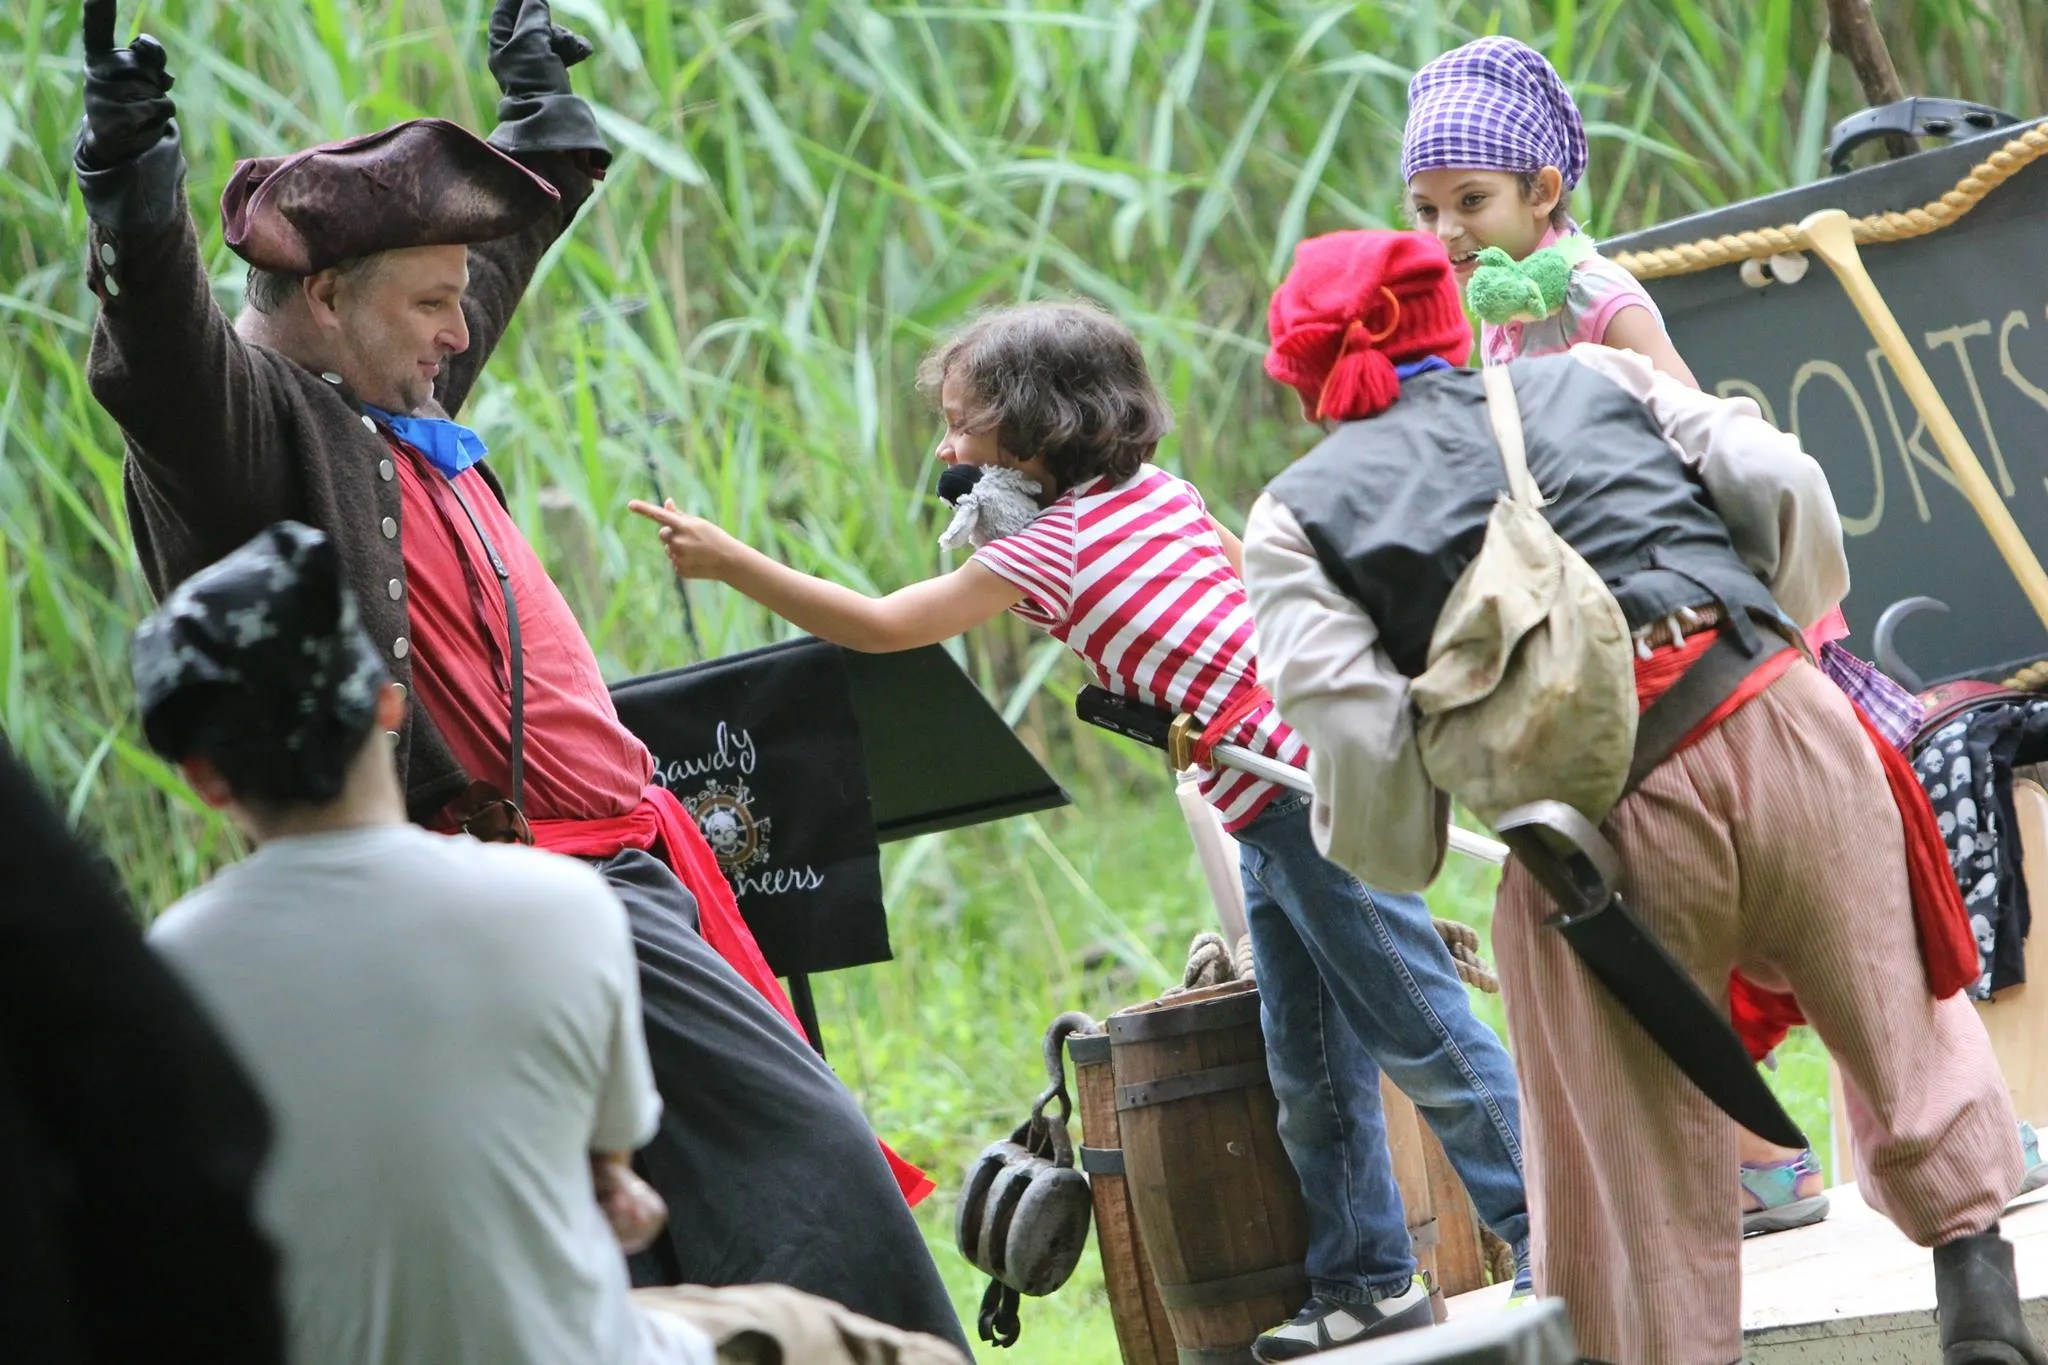 Pirate Festivals with the Kids